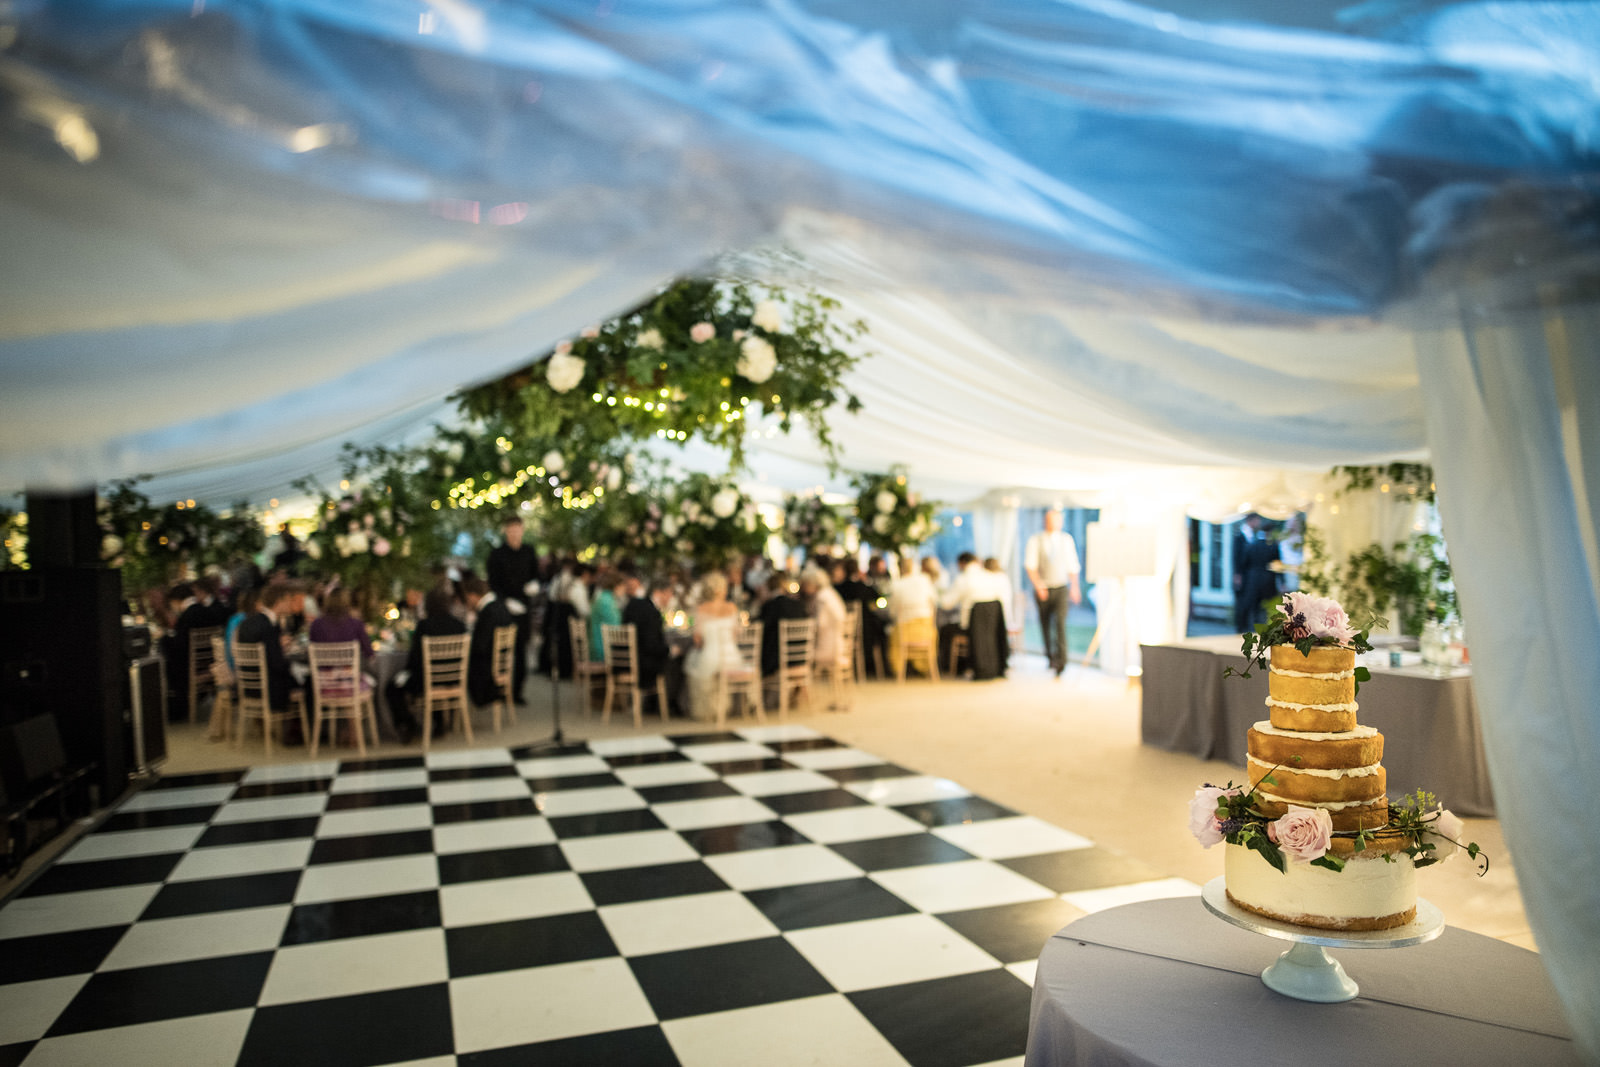 Marquee with chequered floor